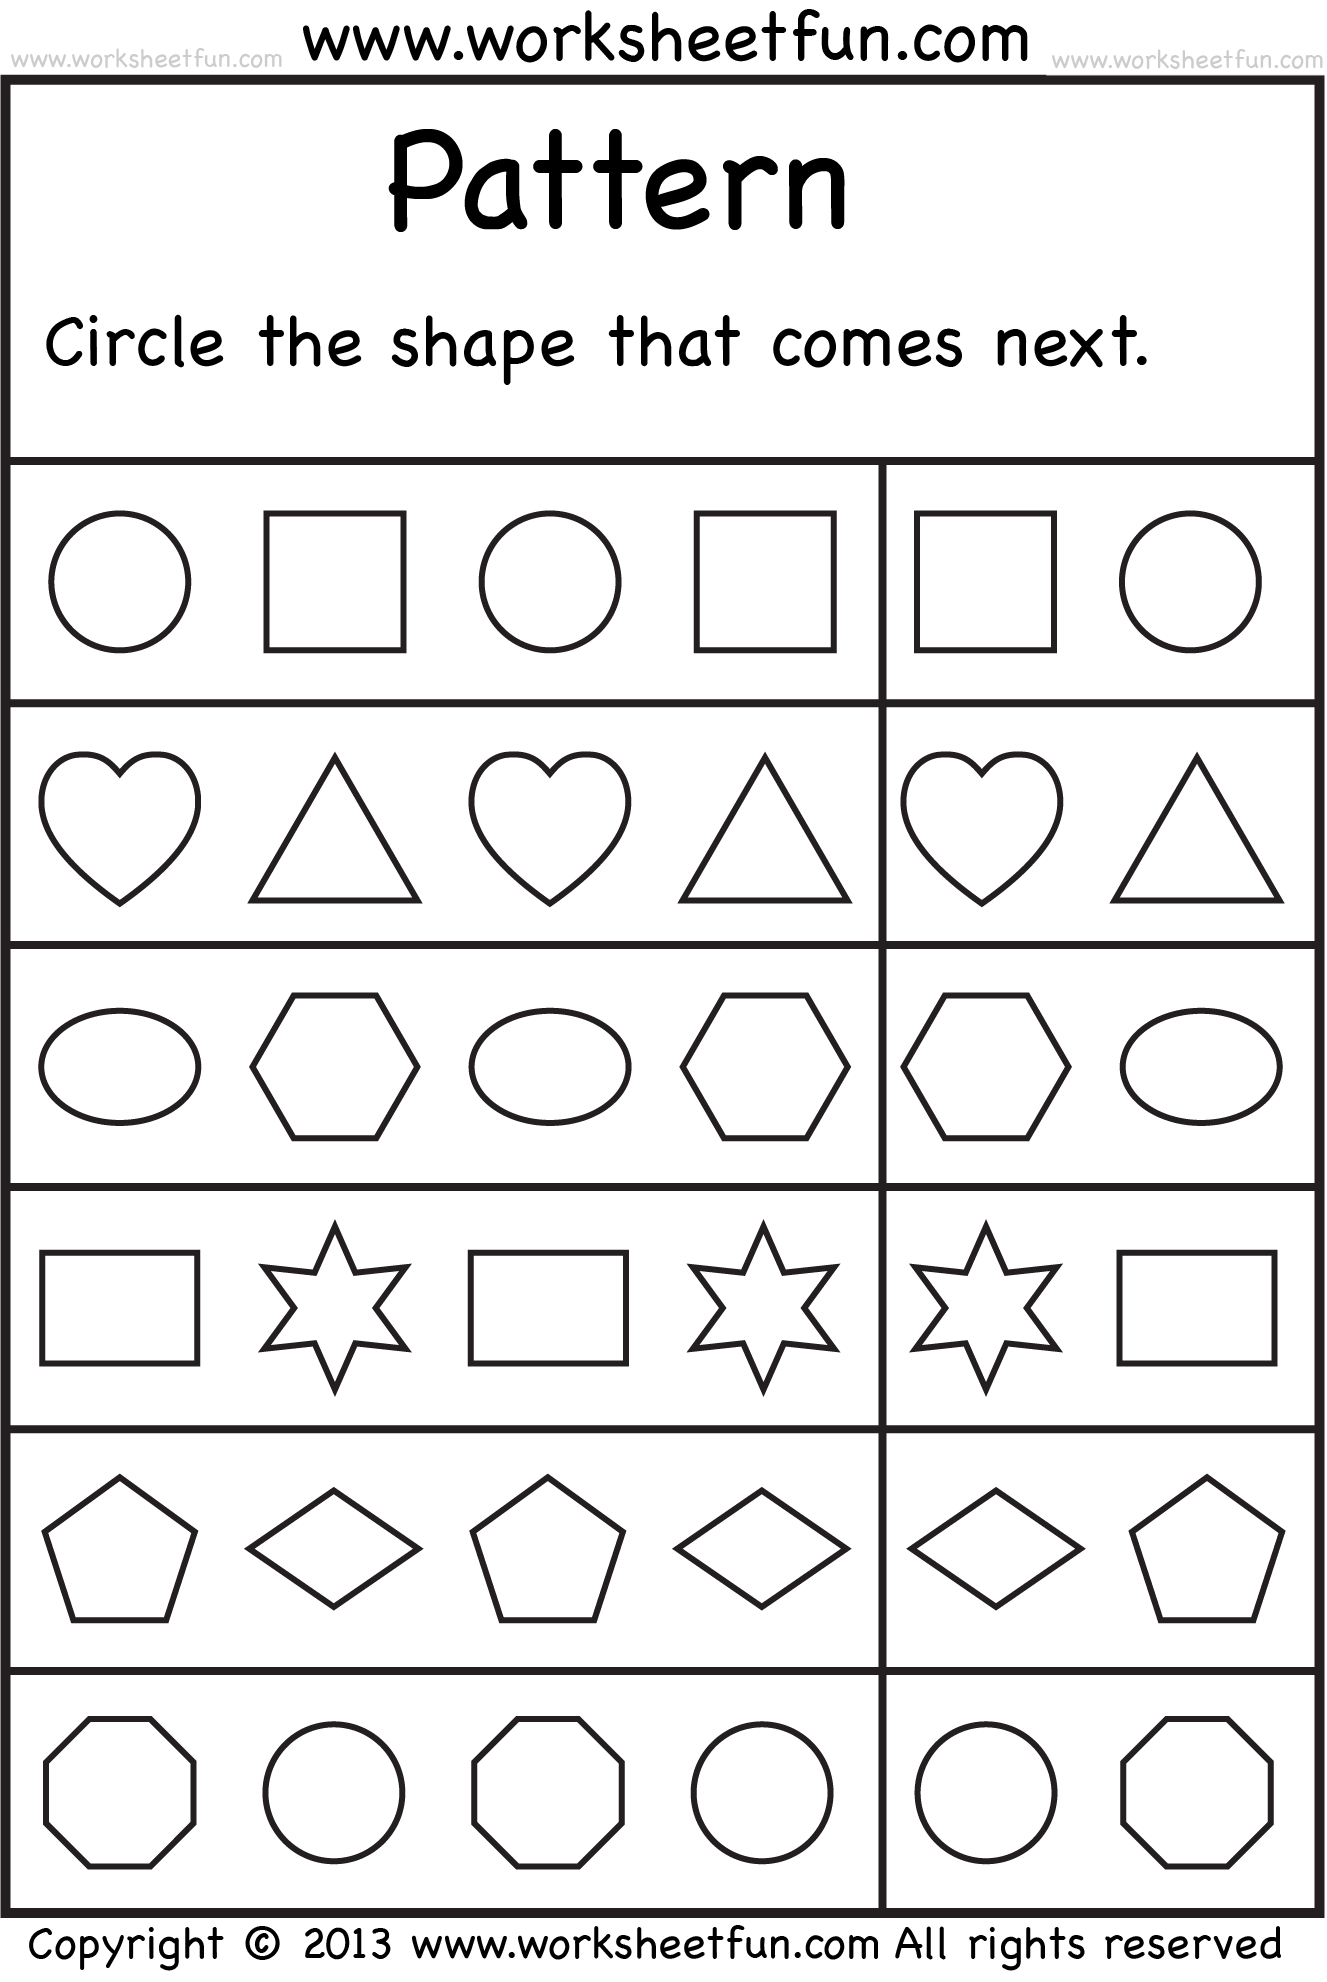 Weirdmailus  Surprising  Images About School Worksheets On Pinterest  Number Words  With Exciting  Images About School Worksheets On Pinterest  Number Words Alphabet Worksheets And Free Printable Kindergarten Worksheets With Awesome Forgiveness Worksheets Also Parts Of The Atom Worksheet In Addition Opus Music Worksheets And Trauma Worksheets As Well As Combining Like Terms Worksheet Pdf Additionally Adding Mixed Fractions Worksheets From Pinterestcom With Weirdmailus  Exciting  Images About School Worksheets On Pinterest  Number Words  With Awesome  Images About School Worksheets On Pinterest  Number Words Alphabet Worksheets And Free Printable Kindergarten Worksheets And Surprising Forgiveness Worksheets Also Parts Of The Atom Worksheet In Addition Opus Music Worksheets From Pinterestcom